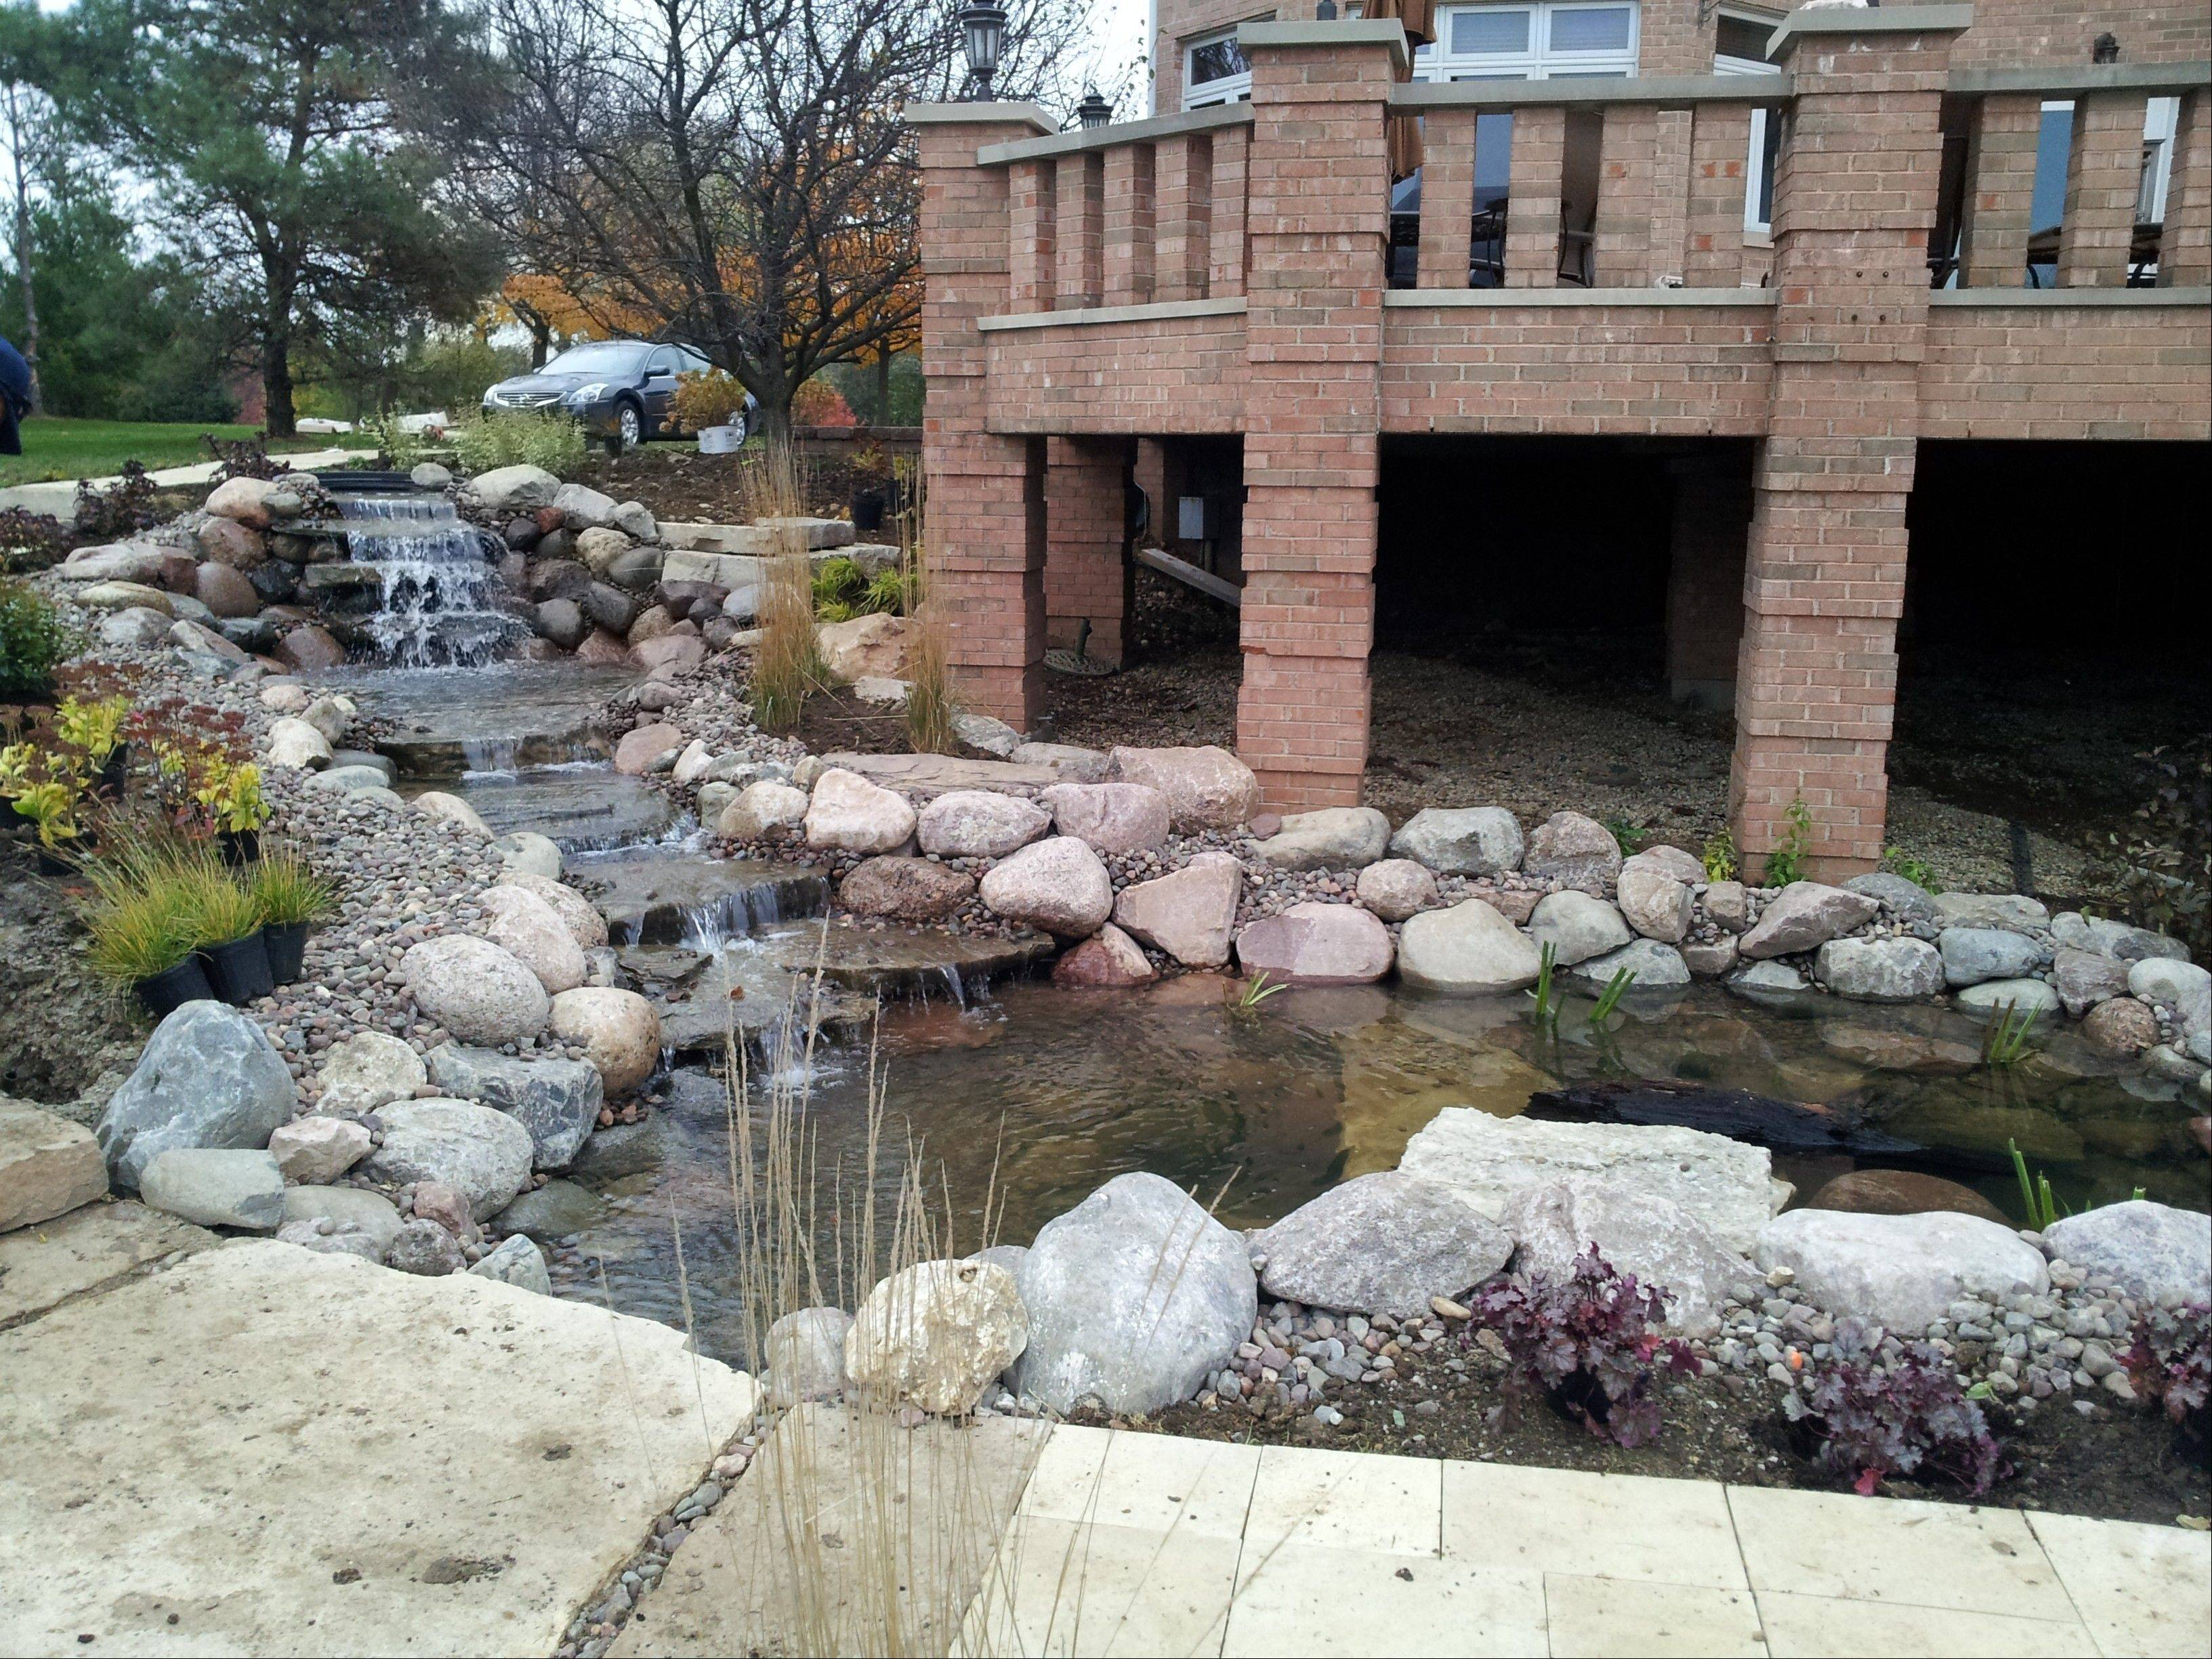 In addition to fountains, natural stone is being used for patios and walkways, says Colin Taheny of RYCO Landscaping.